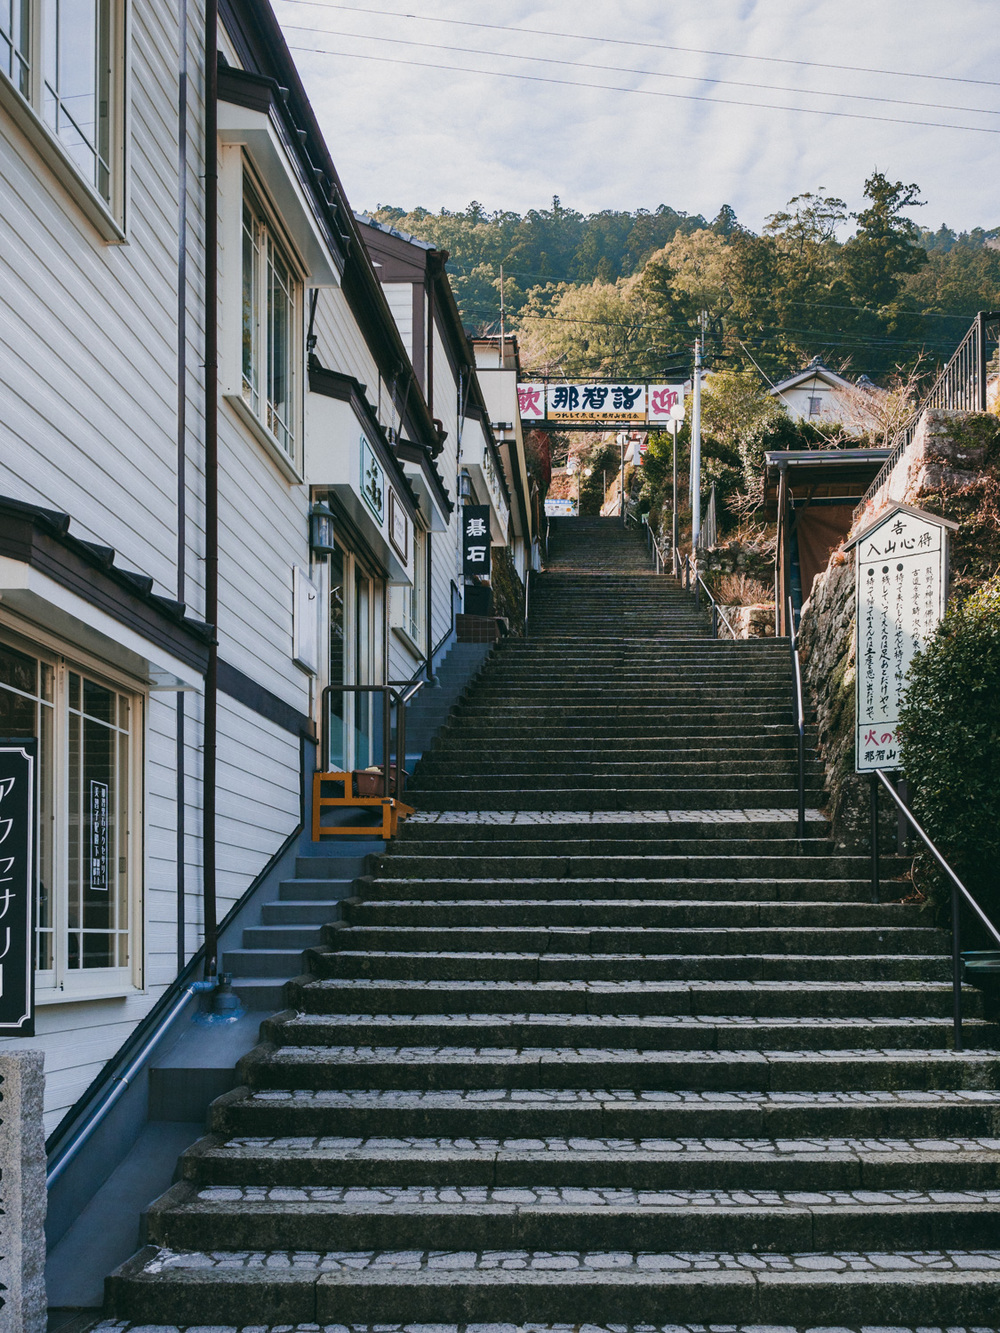 The stairs up to Hiro Shrine